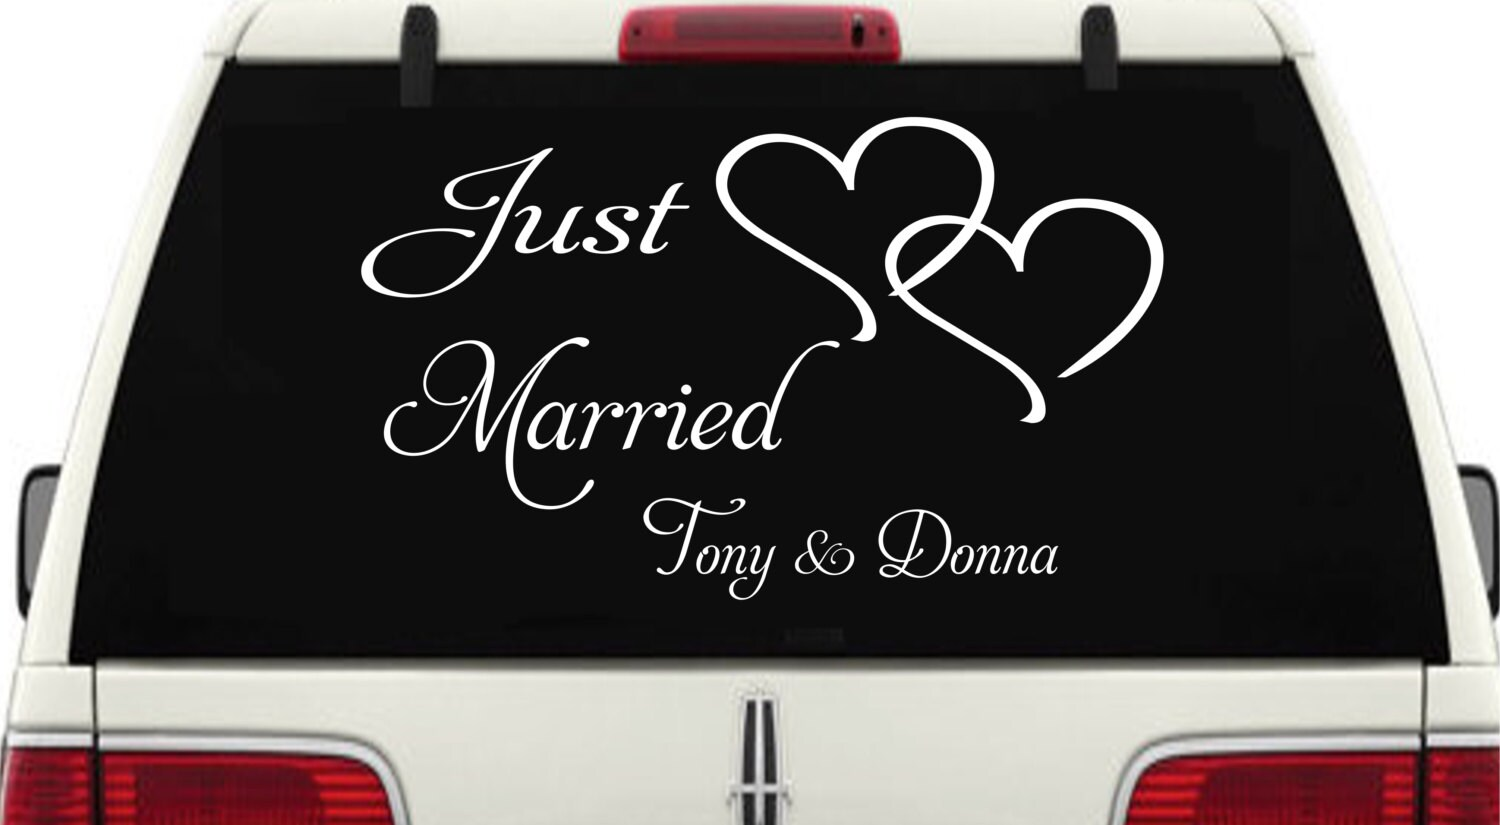 Just Married Car Window Decal Personalized With Two Hearts - Personalized window decals for cars